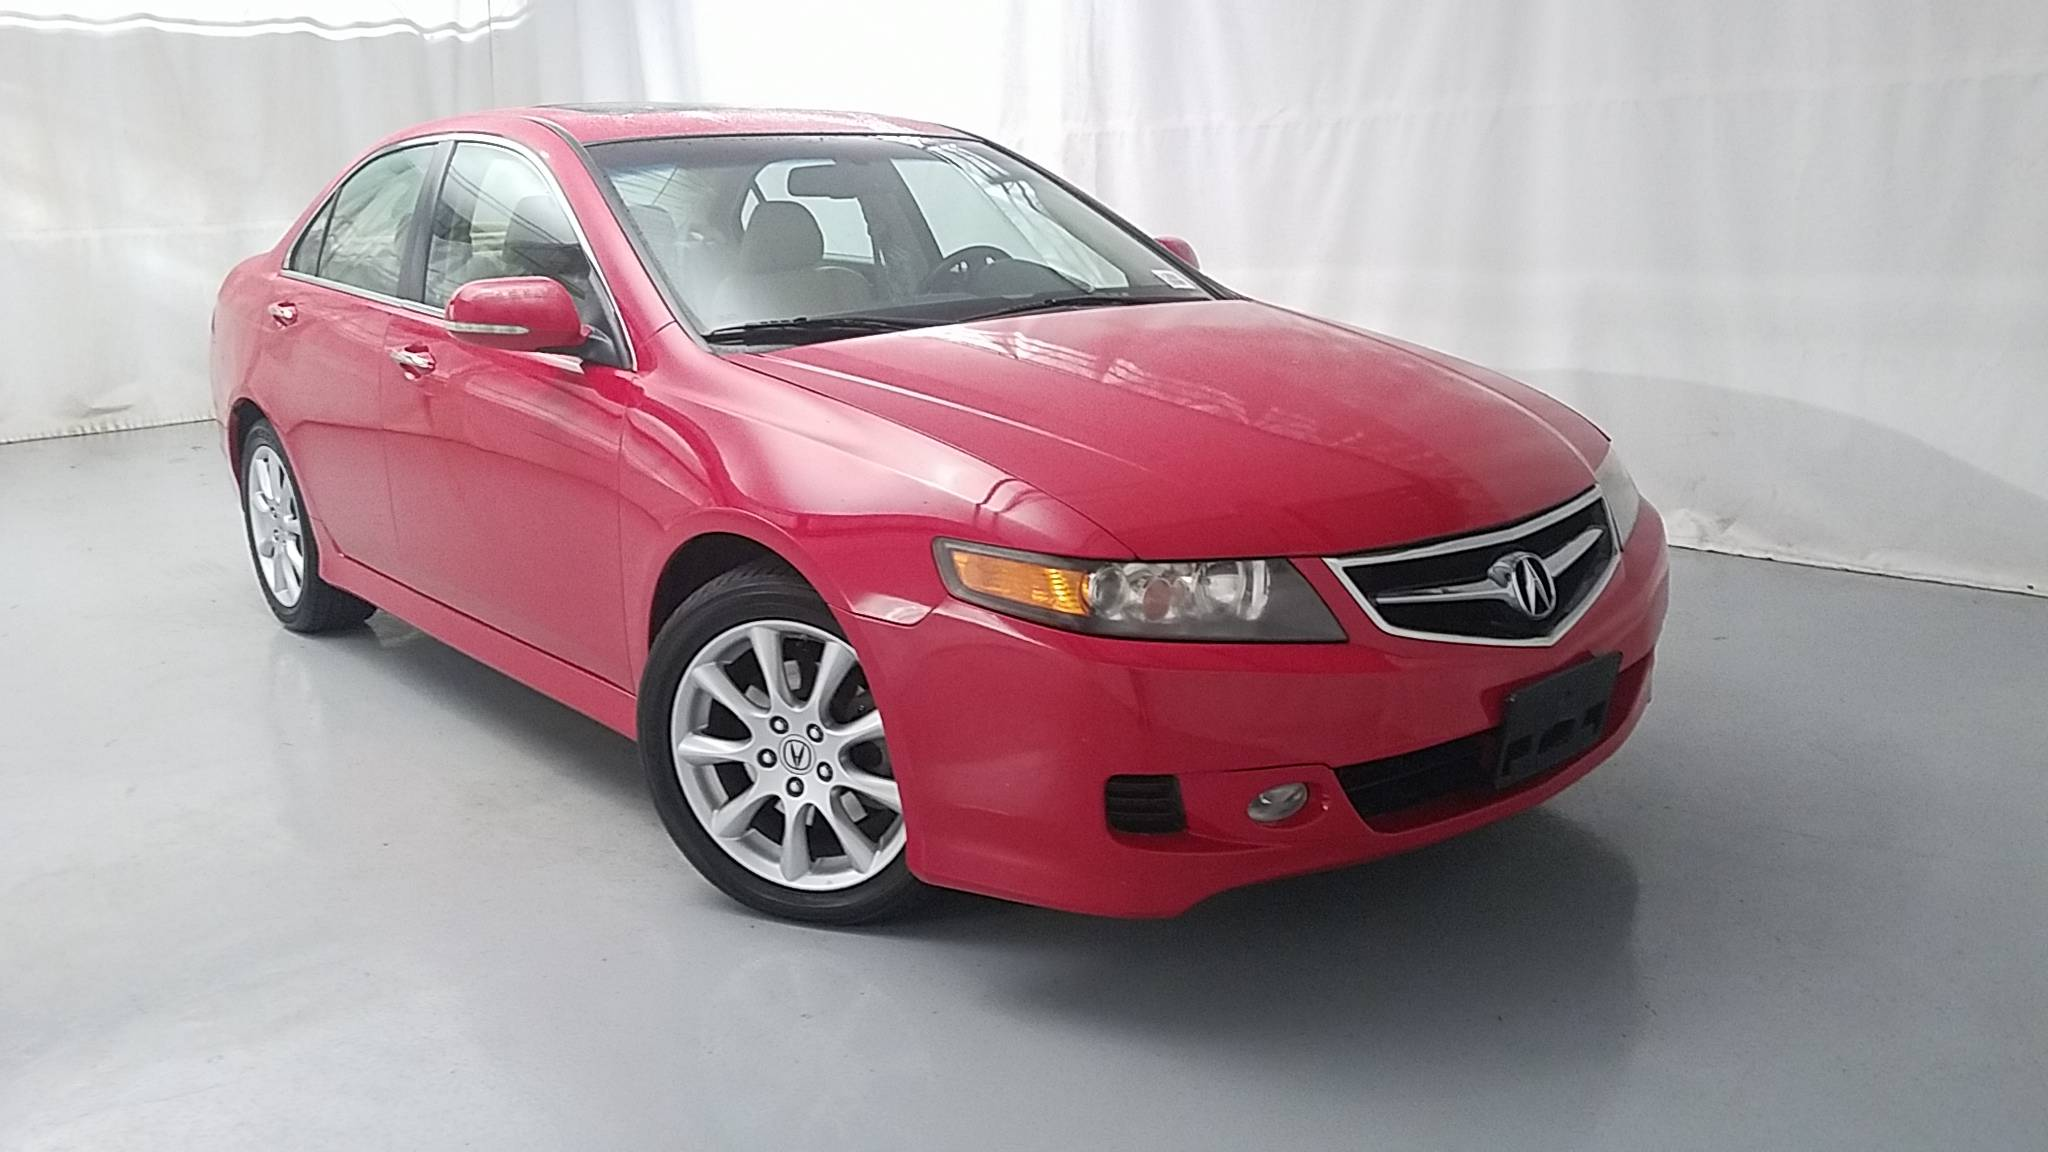 Used 2008 Vehicles for Sale near Hammond New Orleans & Baton Rouge